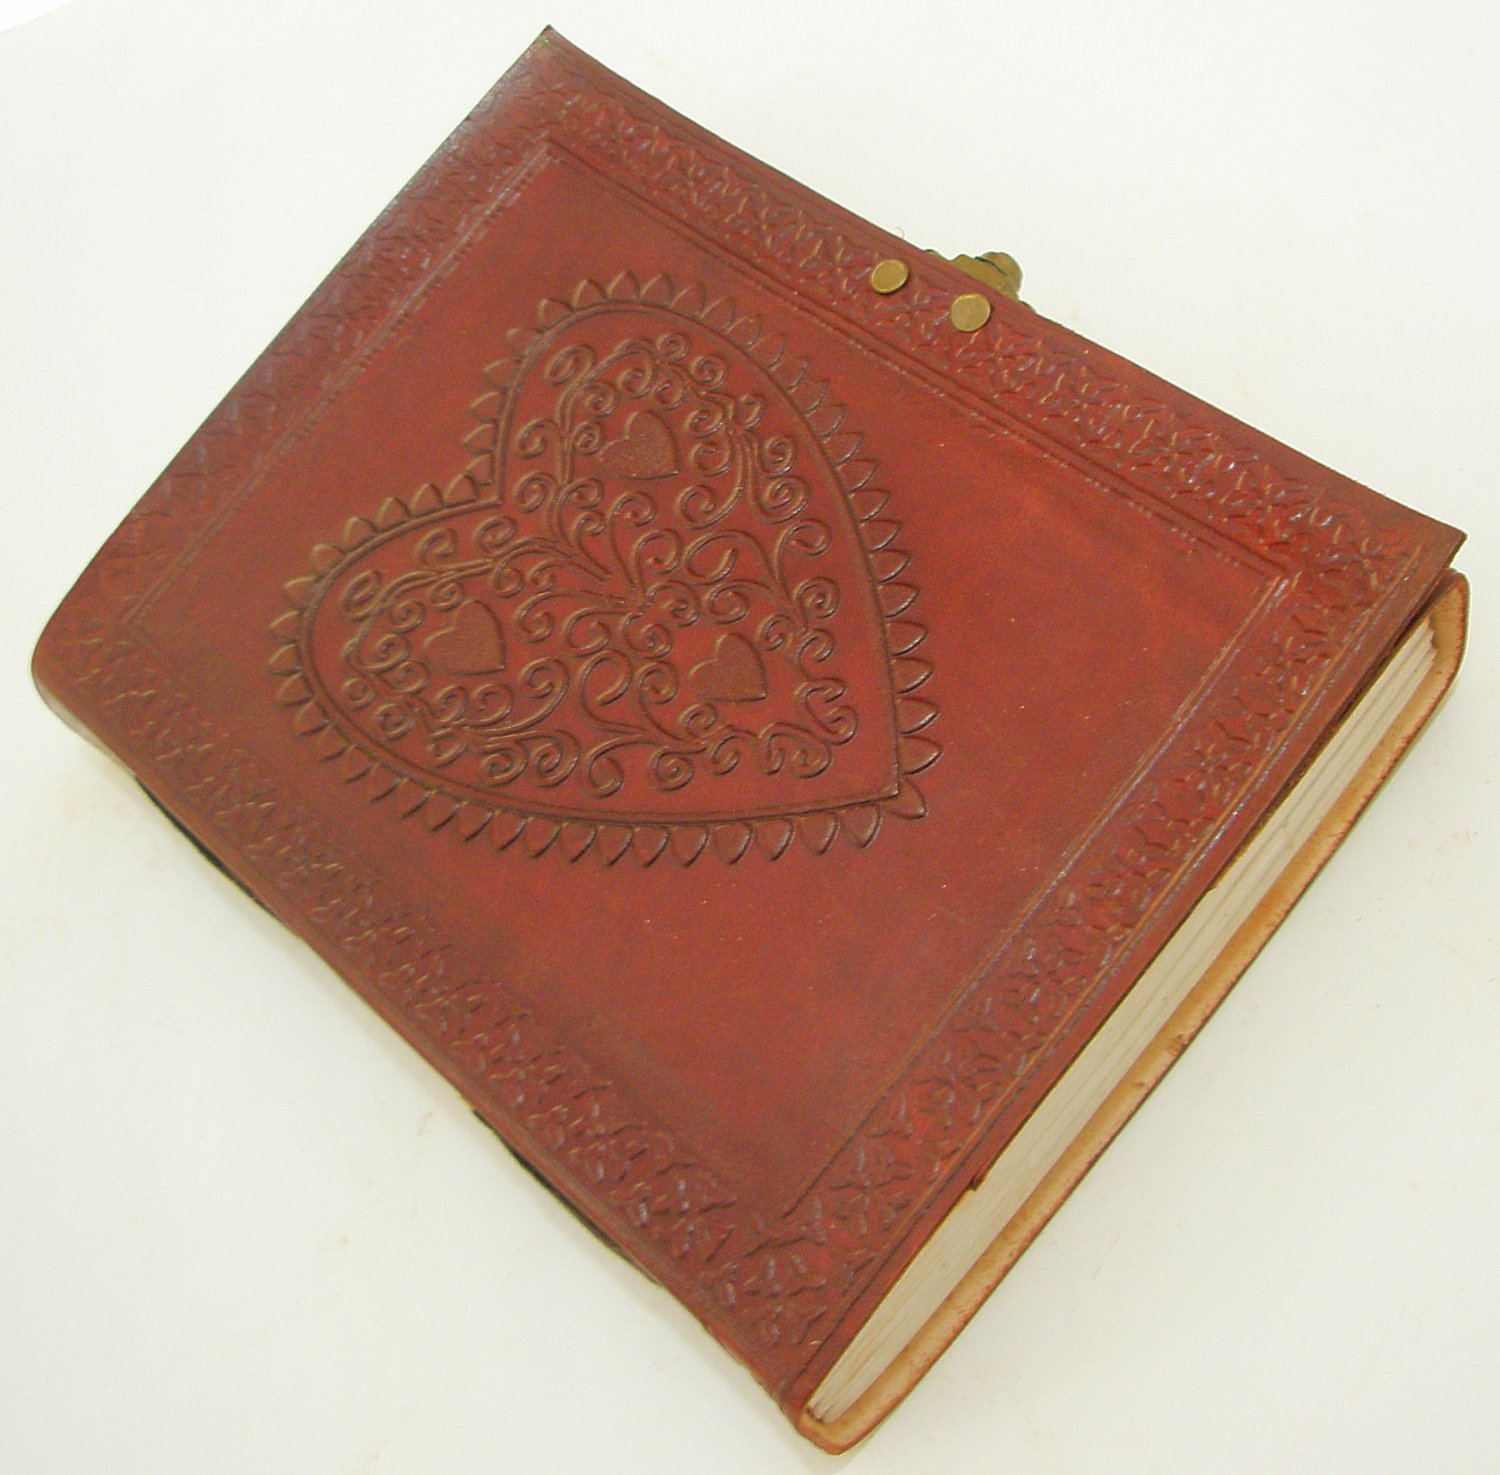 Celtic HEART Embossed Leather Journal Large Unlined Vintage Diary Sketchbook Art